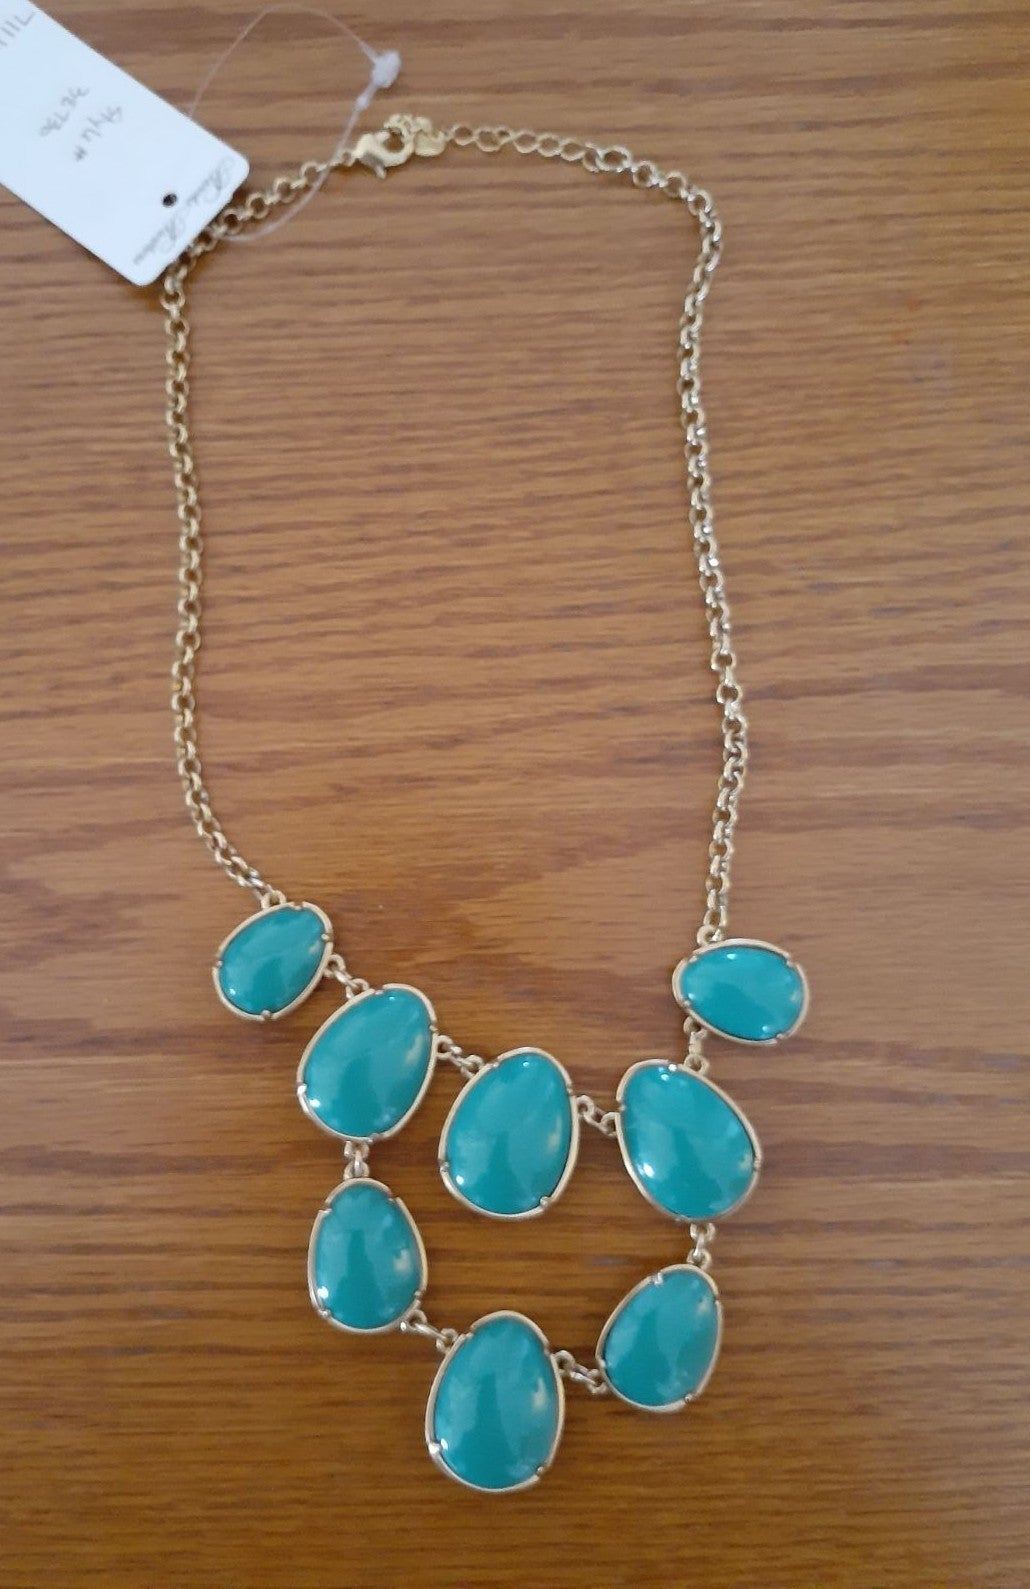 Brooks brothers Necklace turquoise color